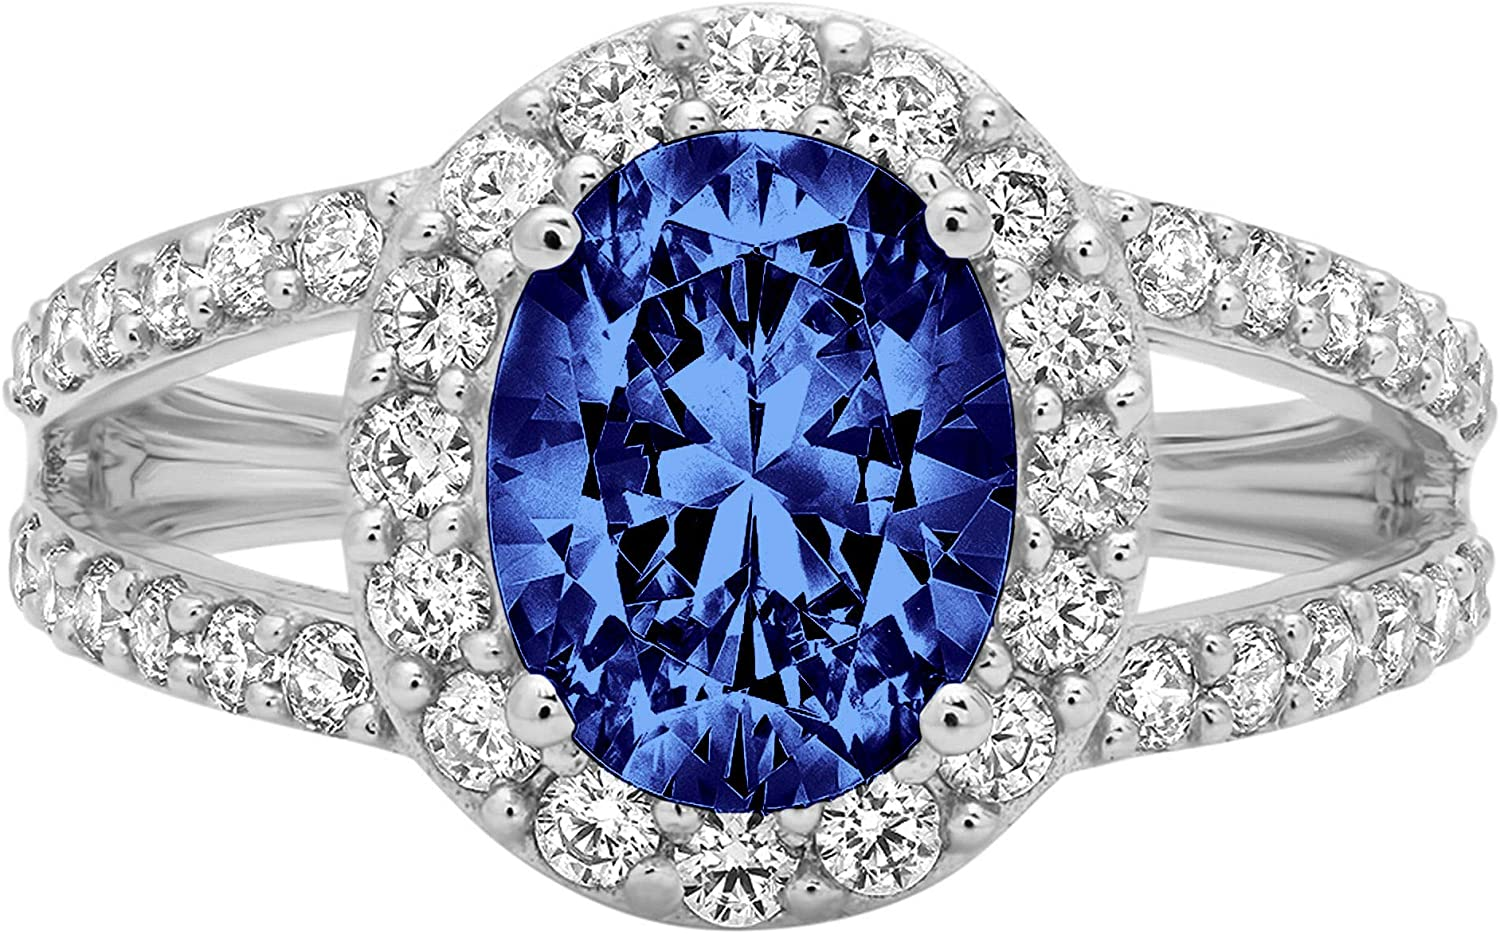 2.29 ct Oval Cut Solitaire with Accent Halo split shank Stunning Genuine Flawless Simulated Blue Tanzanite Modern Promise Statement Designer Ring 14k White Gold